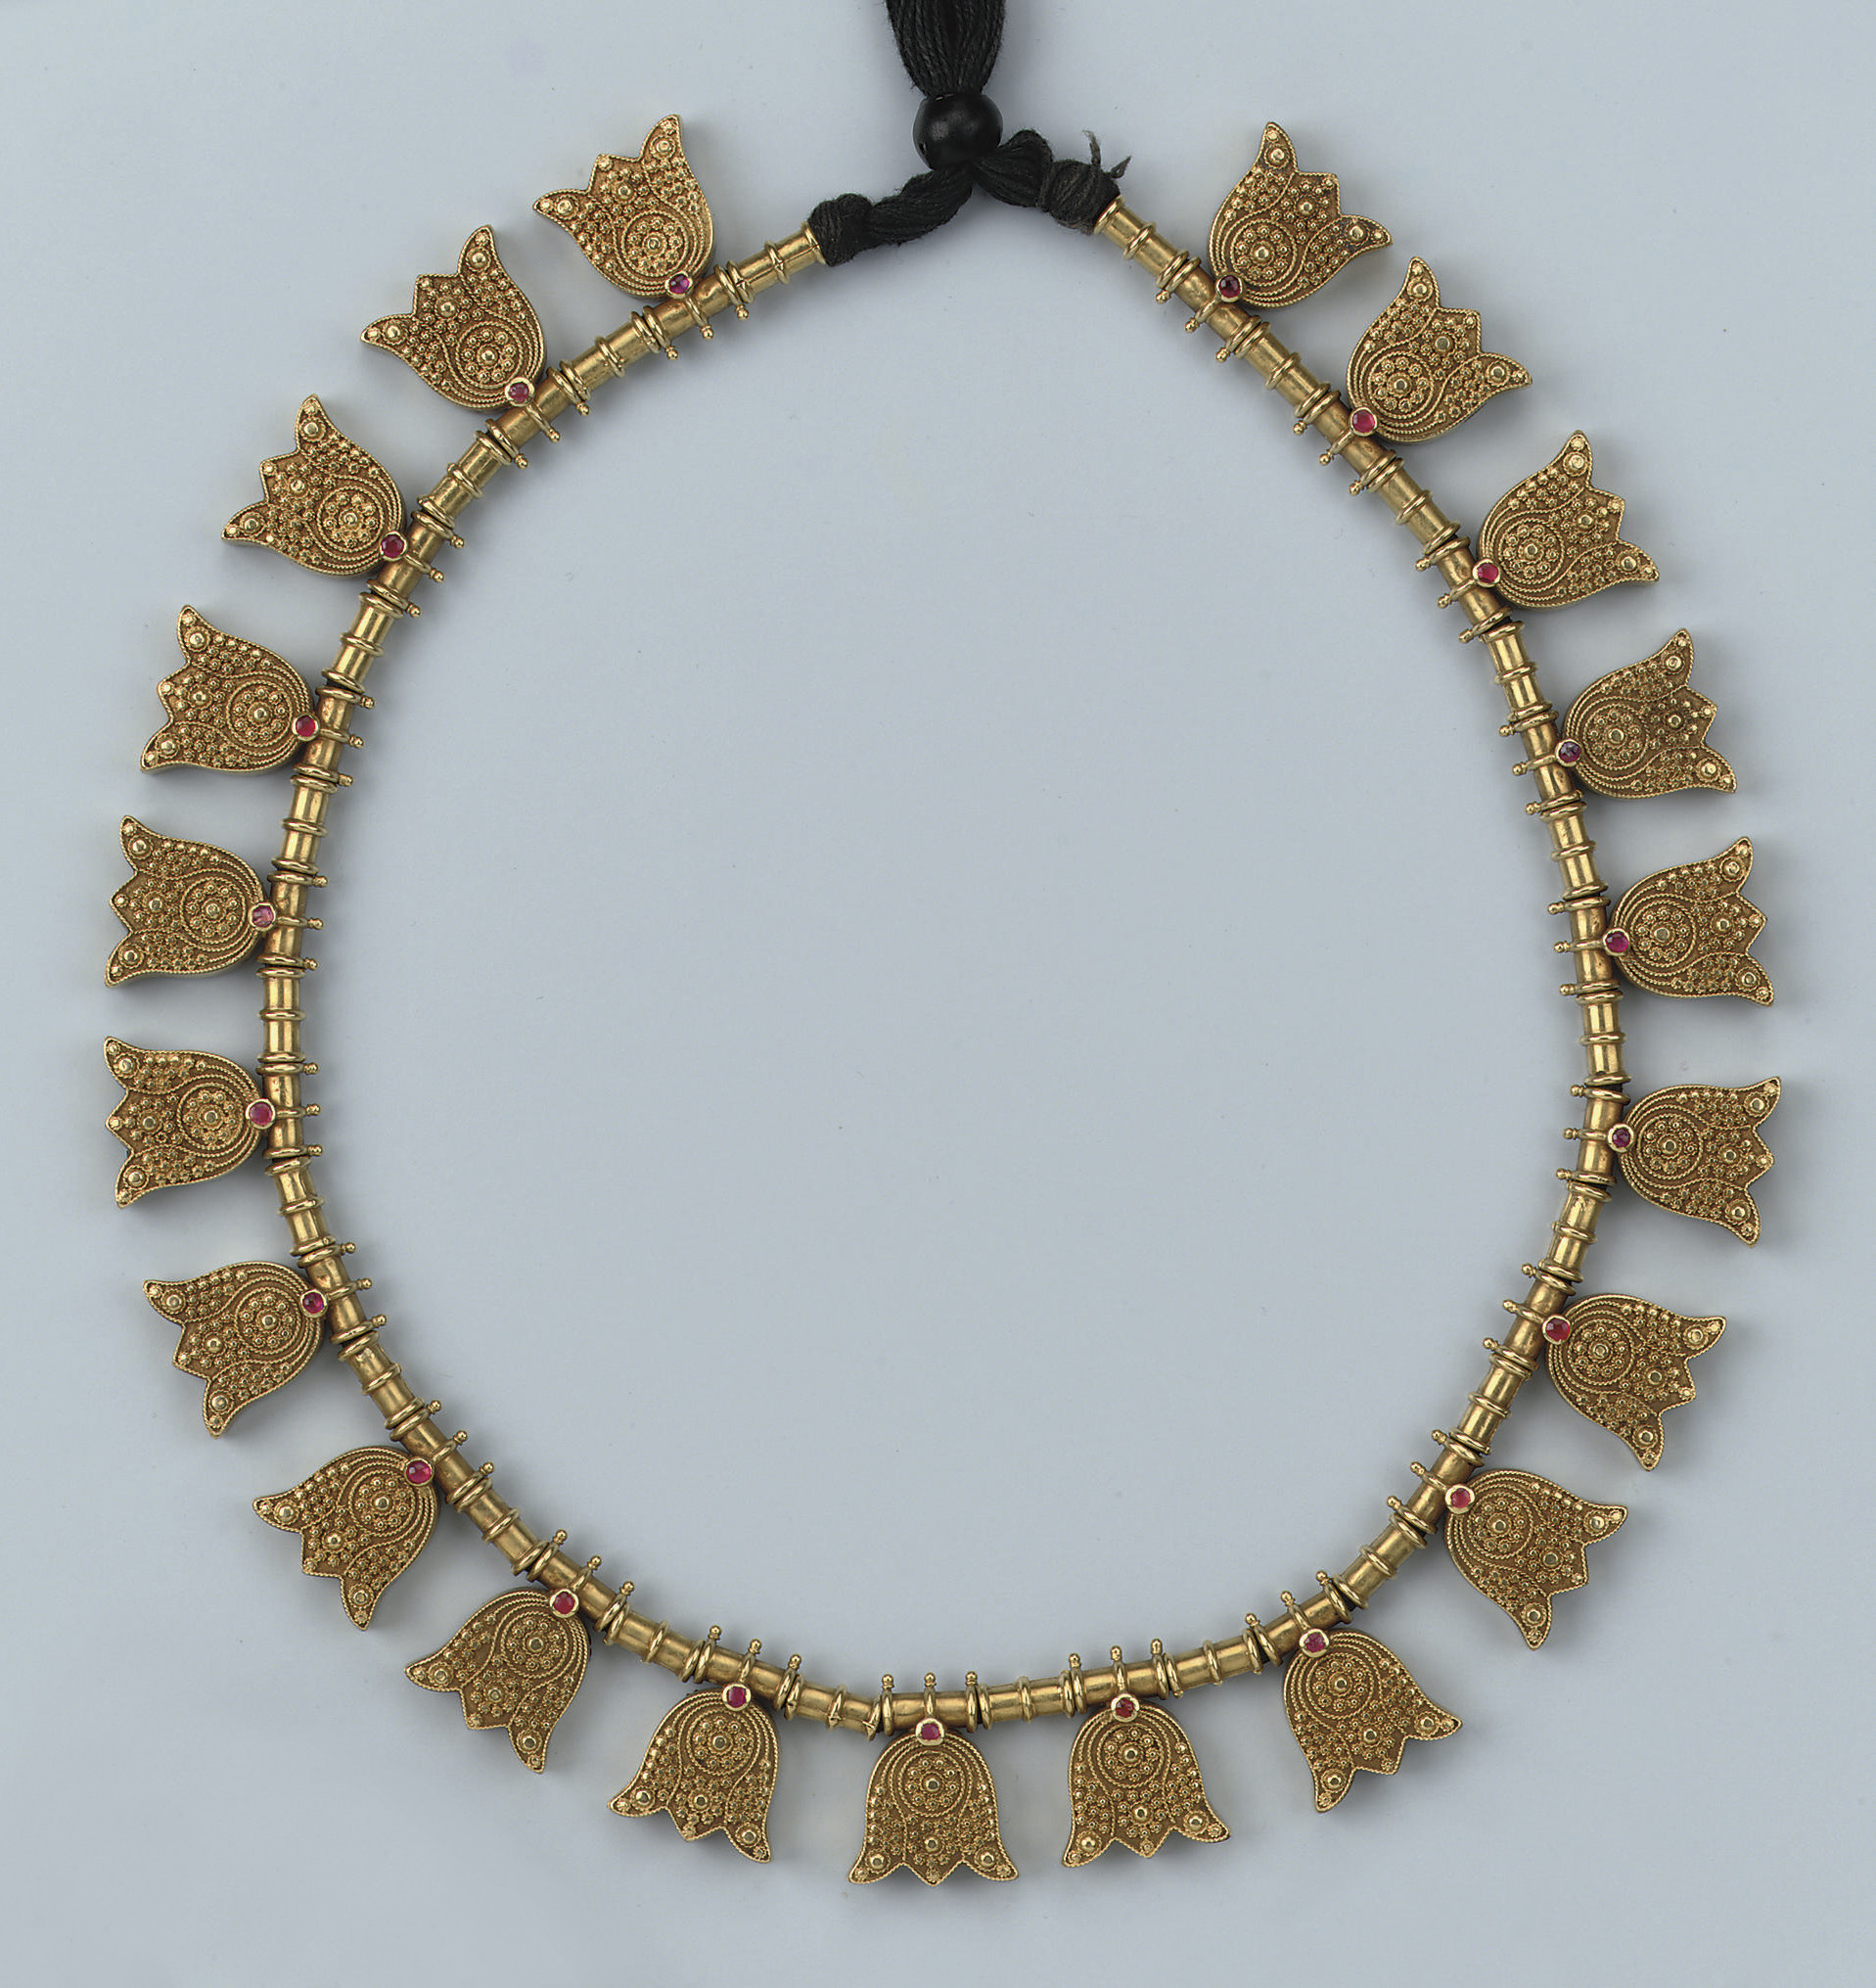 AN ANTIQUE INDIAN GOLD NECKLAC